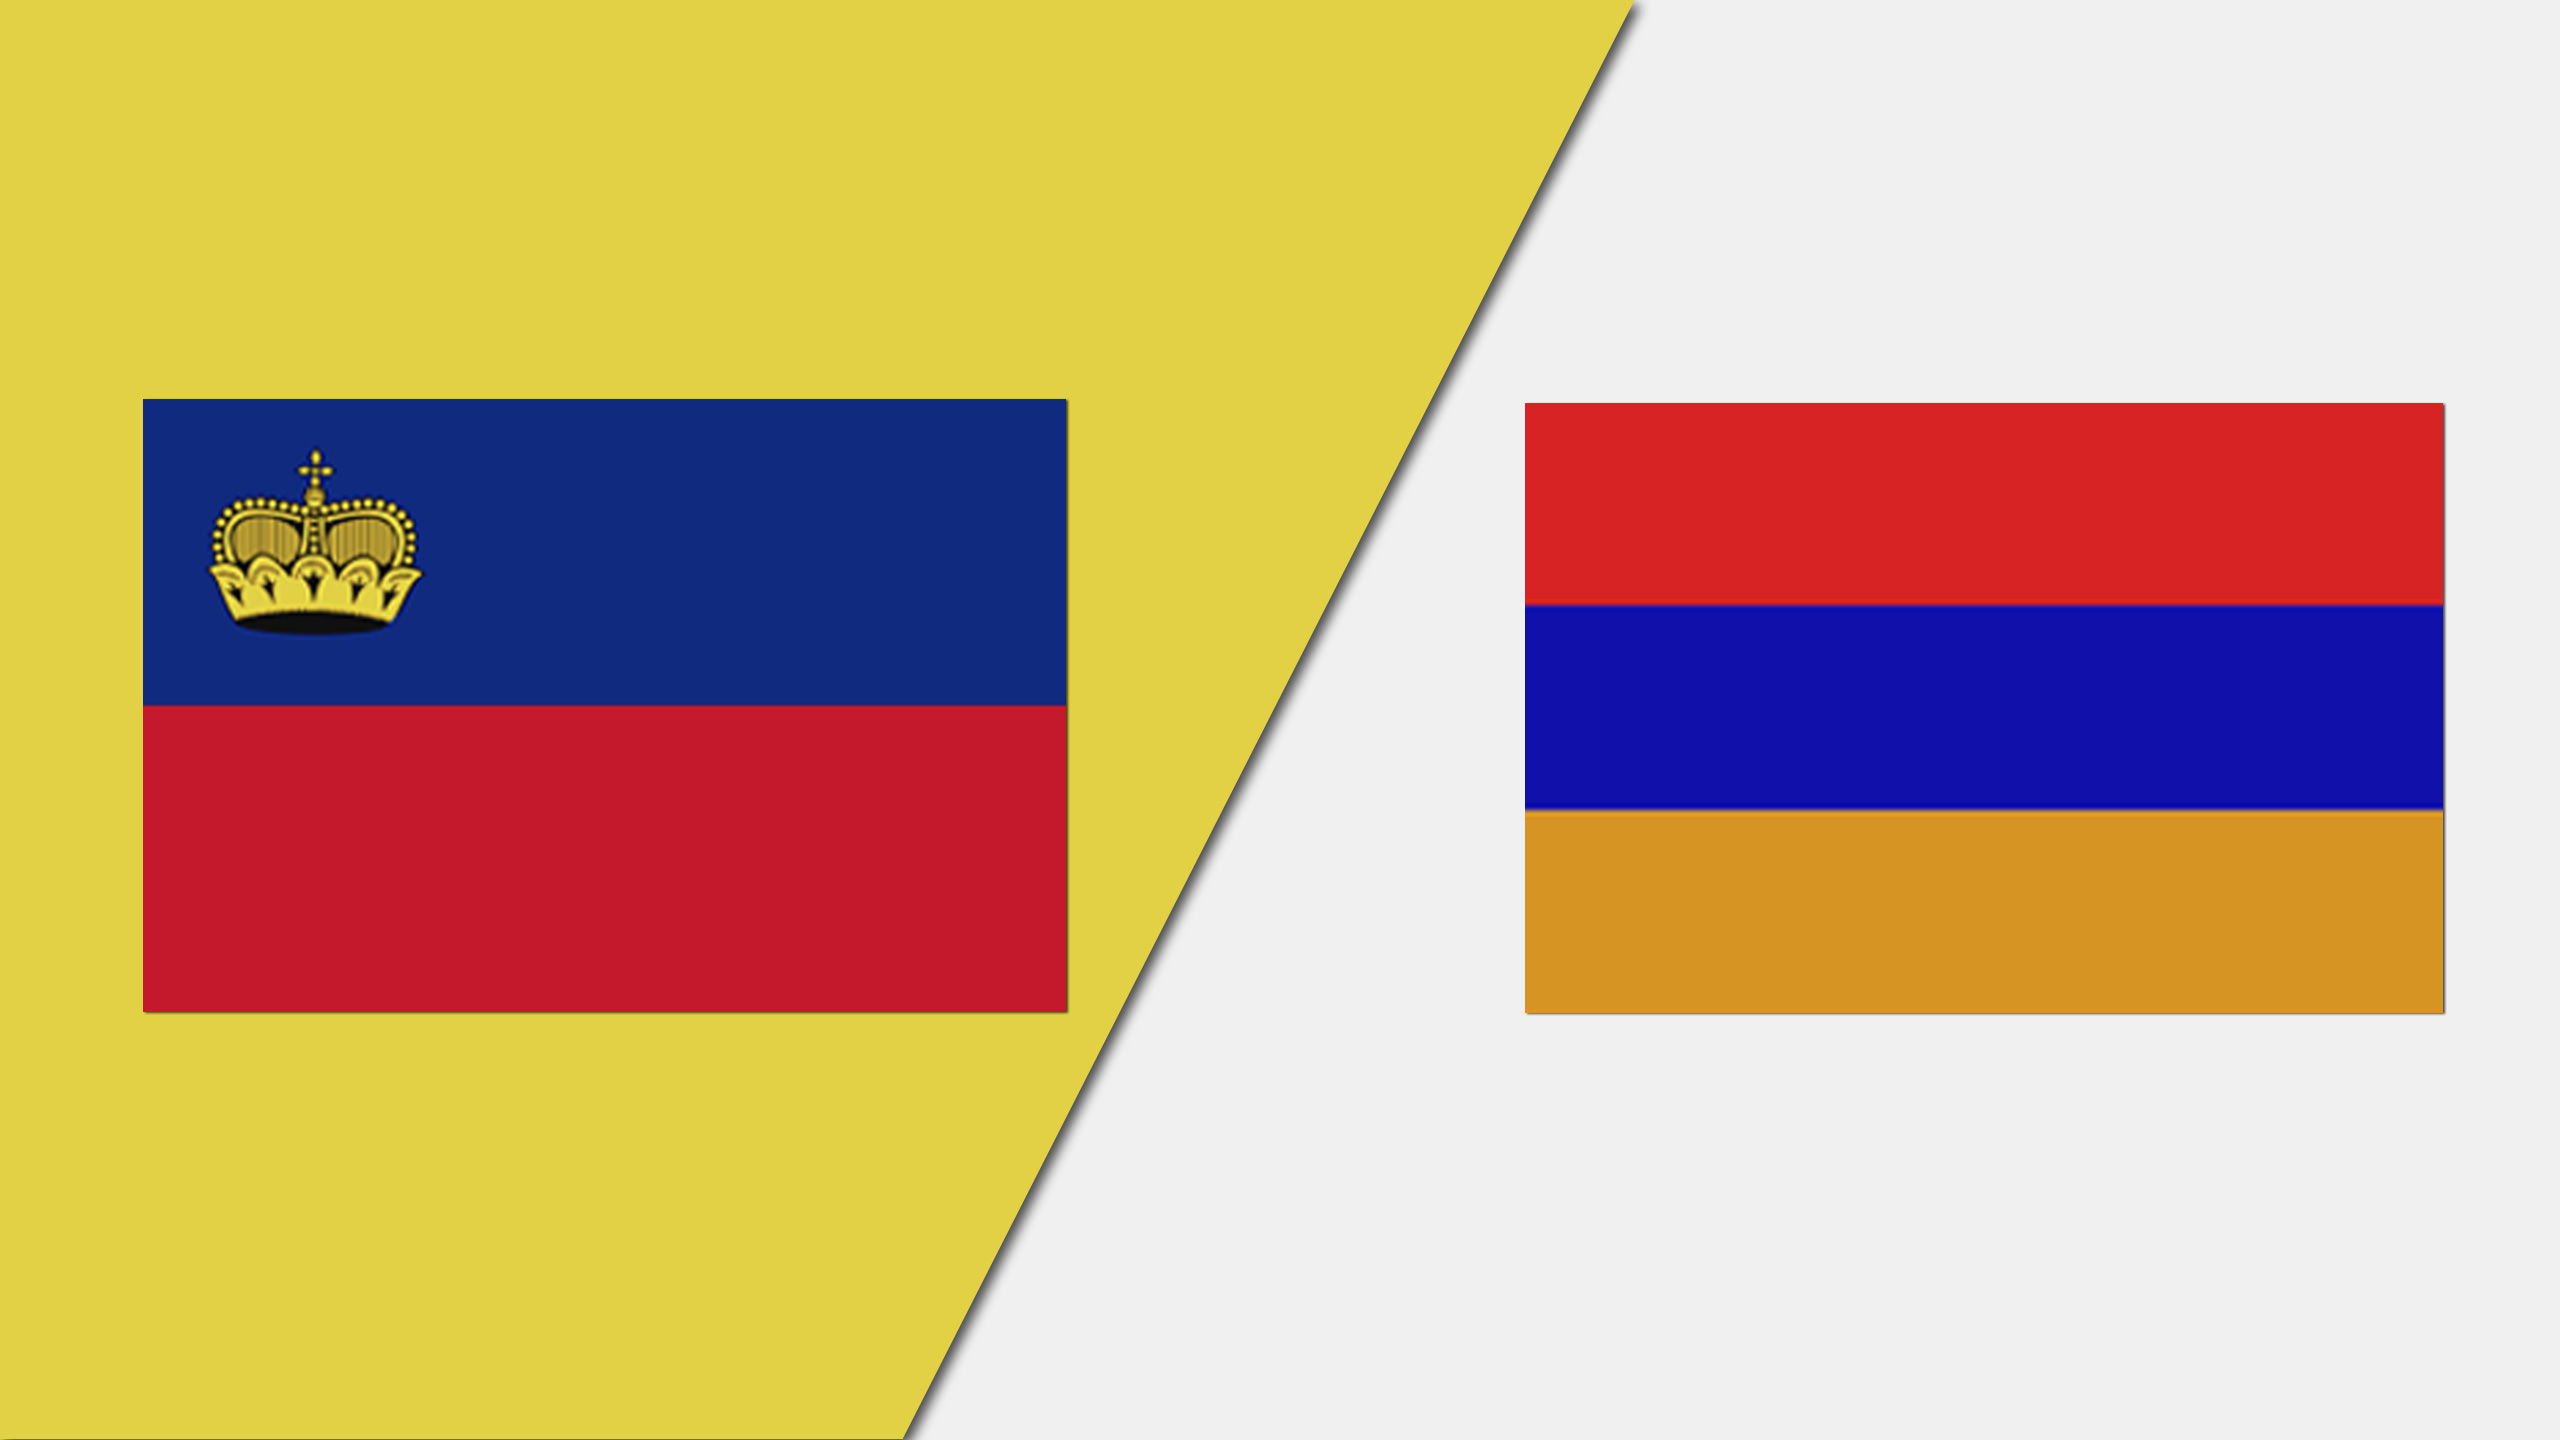 Liechtenstein vs. Armenia